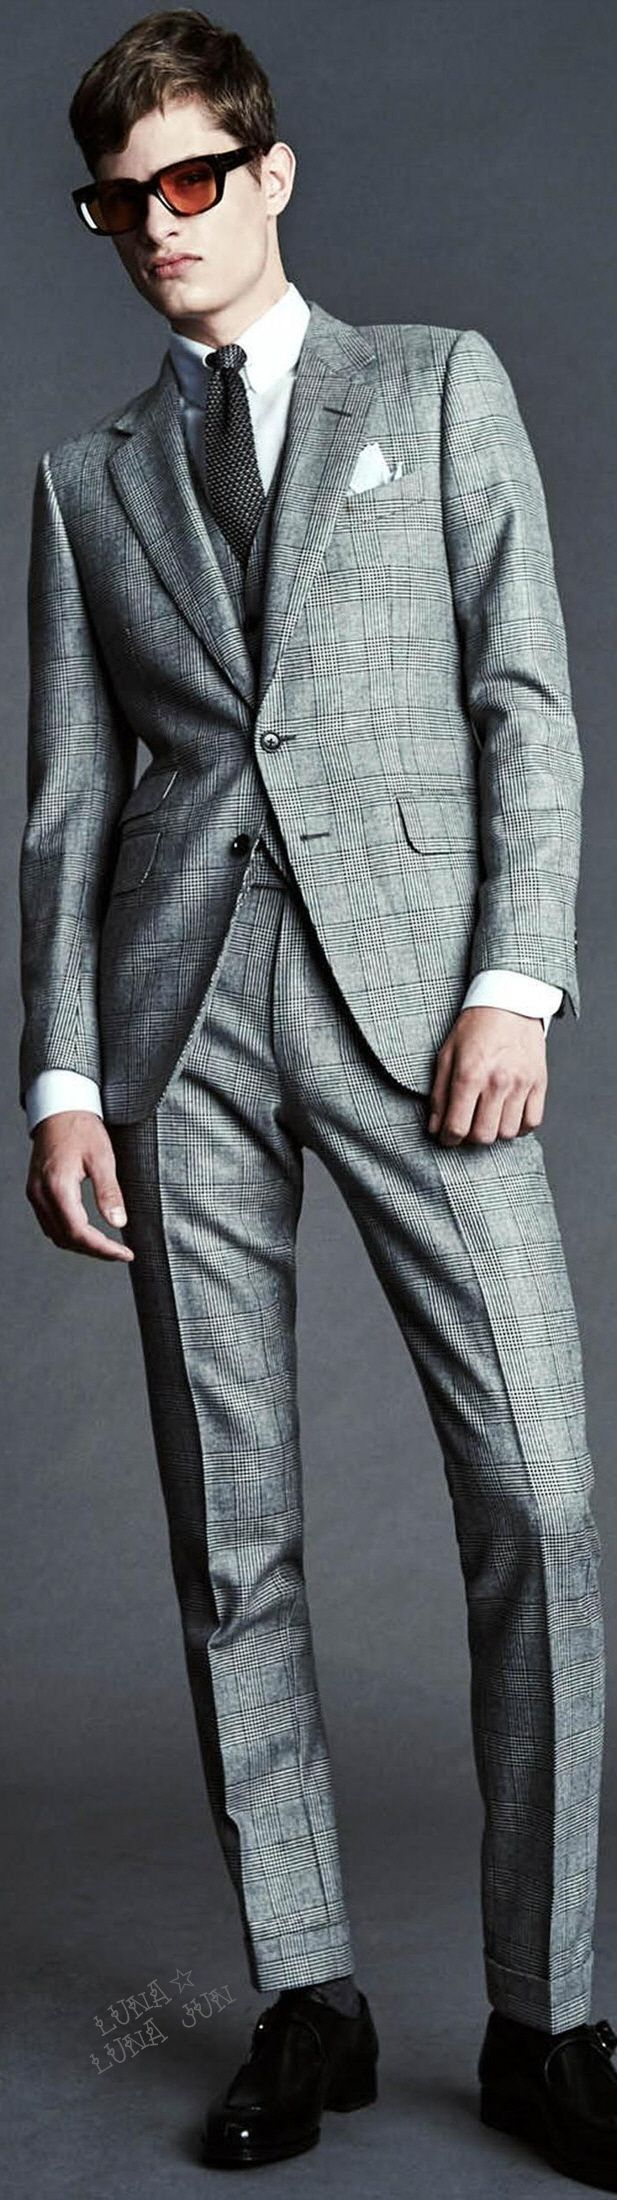 Tom Ford Spring 2016 Menswear | Men's Fashion | Men's Outfit for Business | Men's Suits | Moda Masculina | Shop at designerclothingfans.com